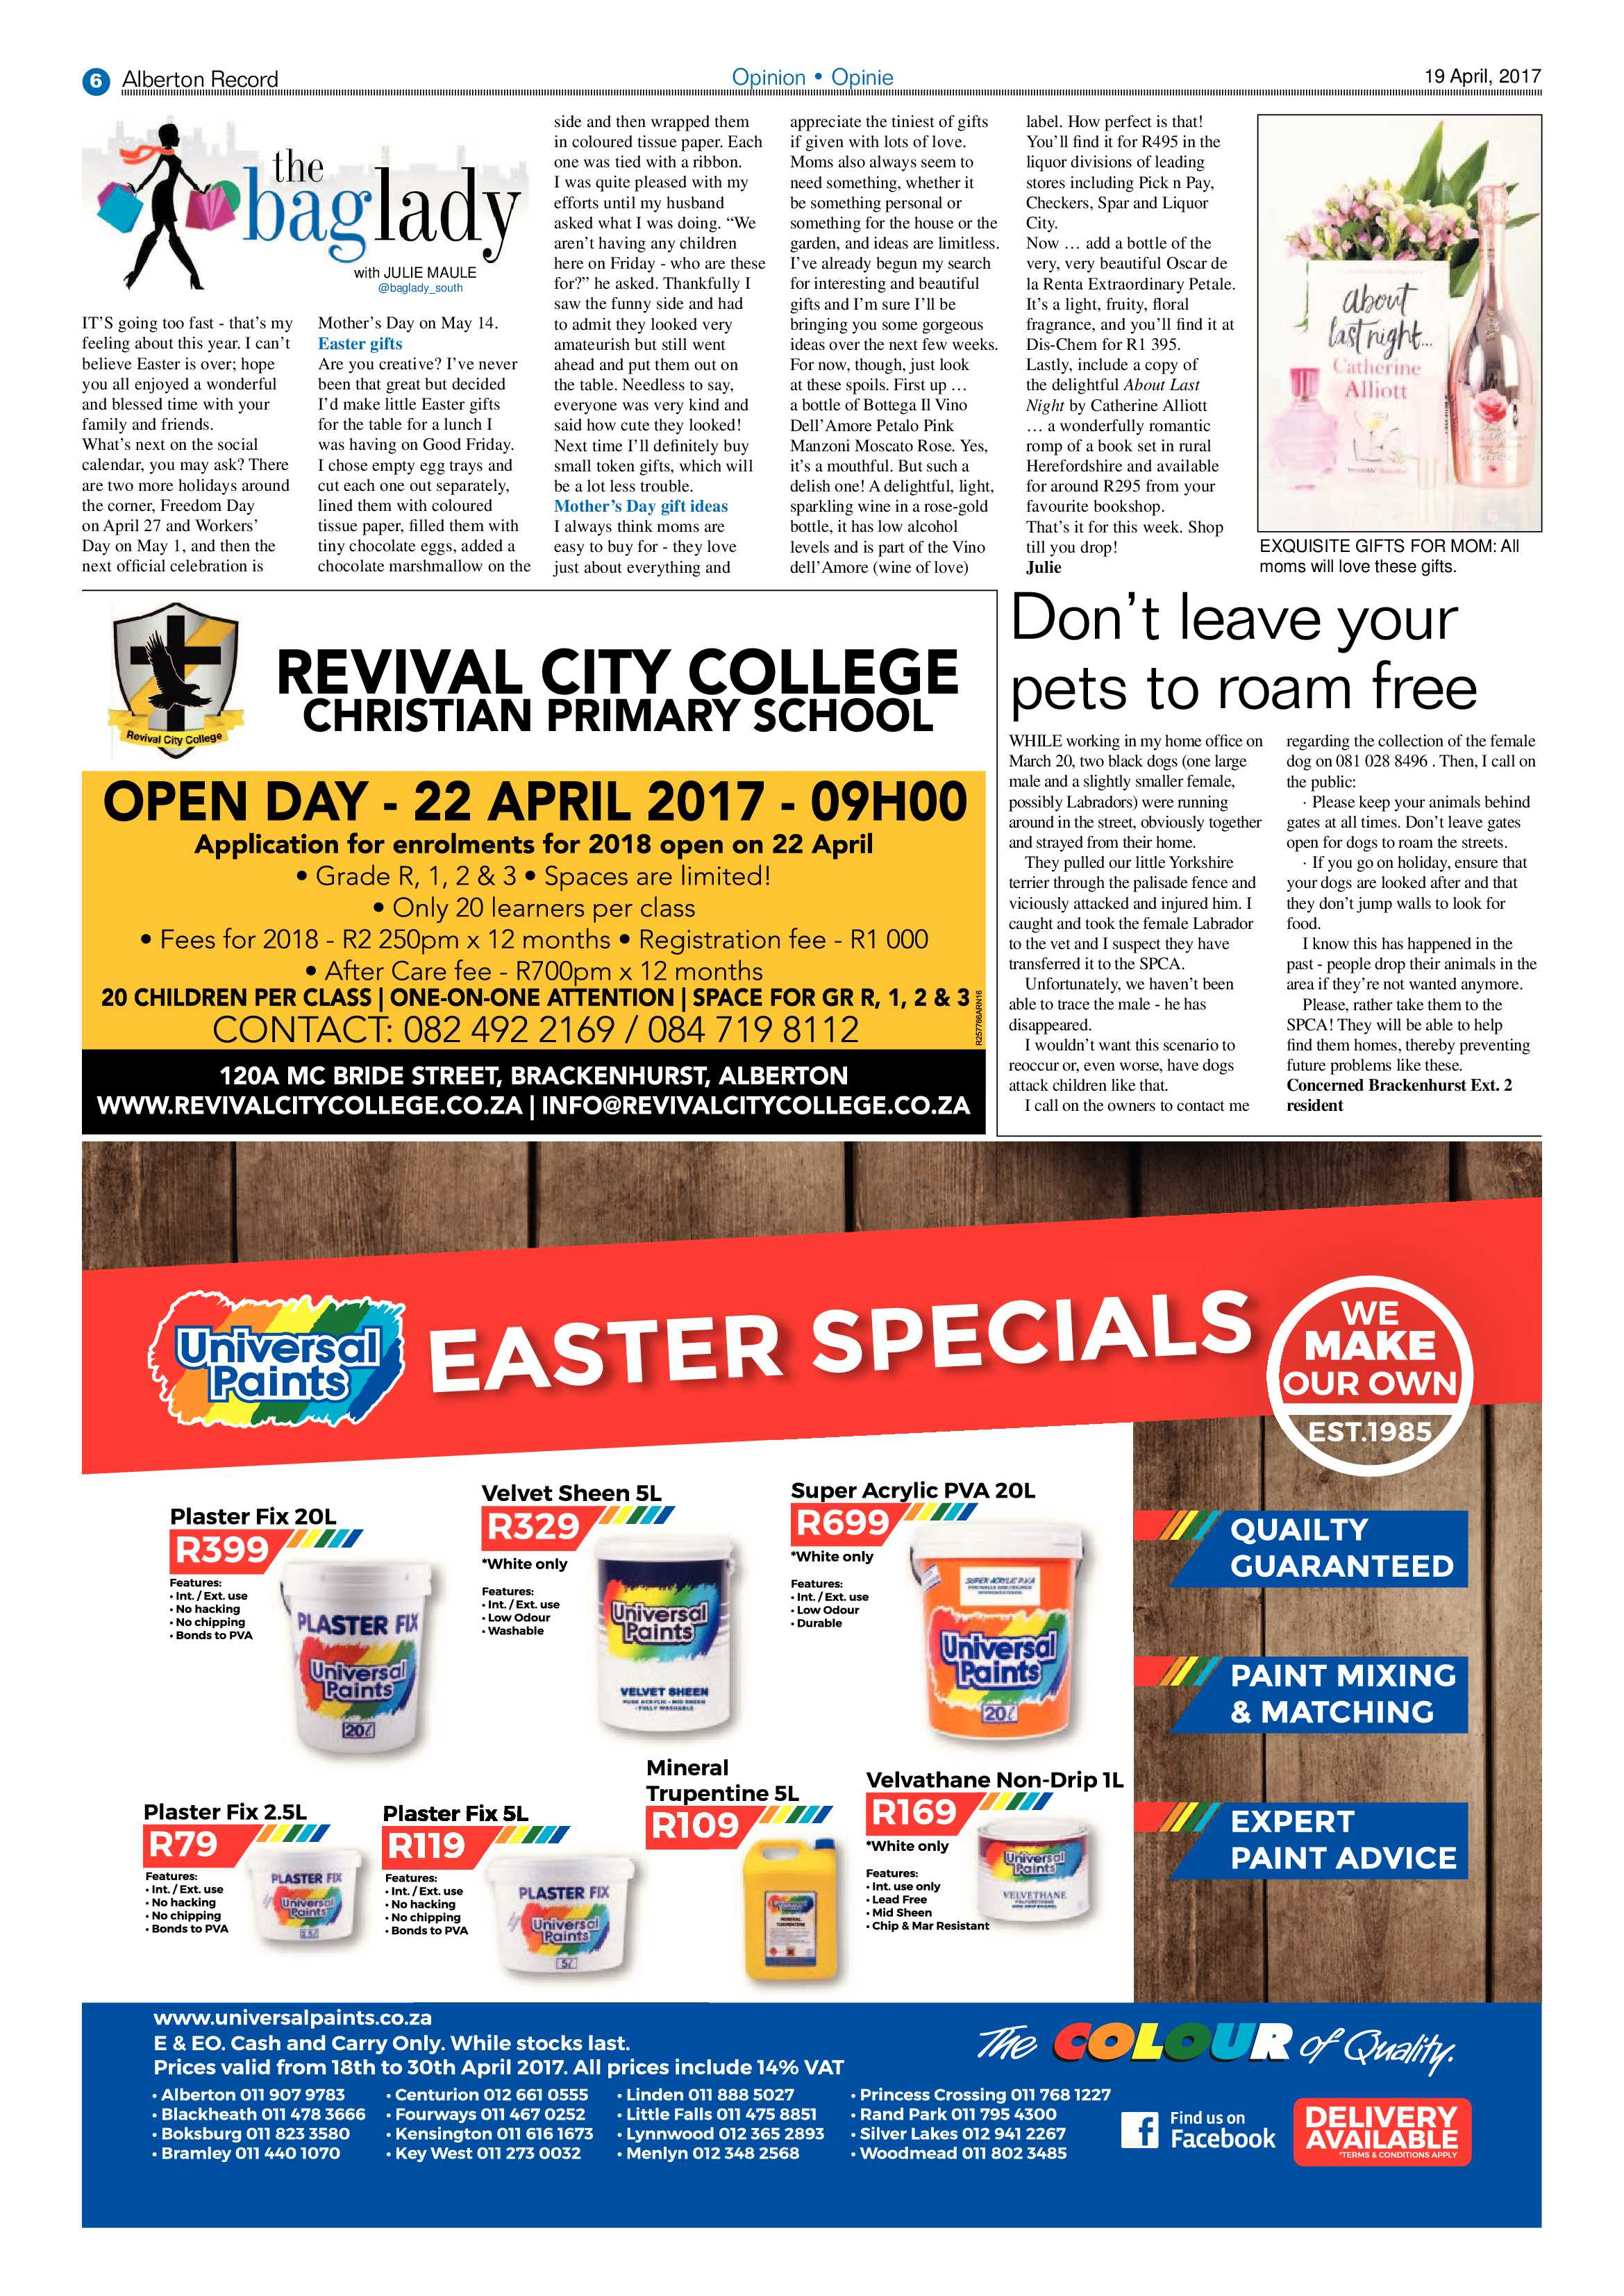 alberton-record-19-april-2017-epapers-page-6